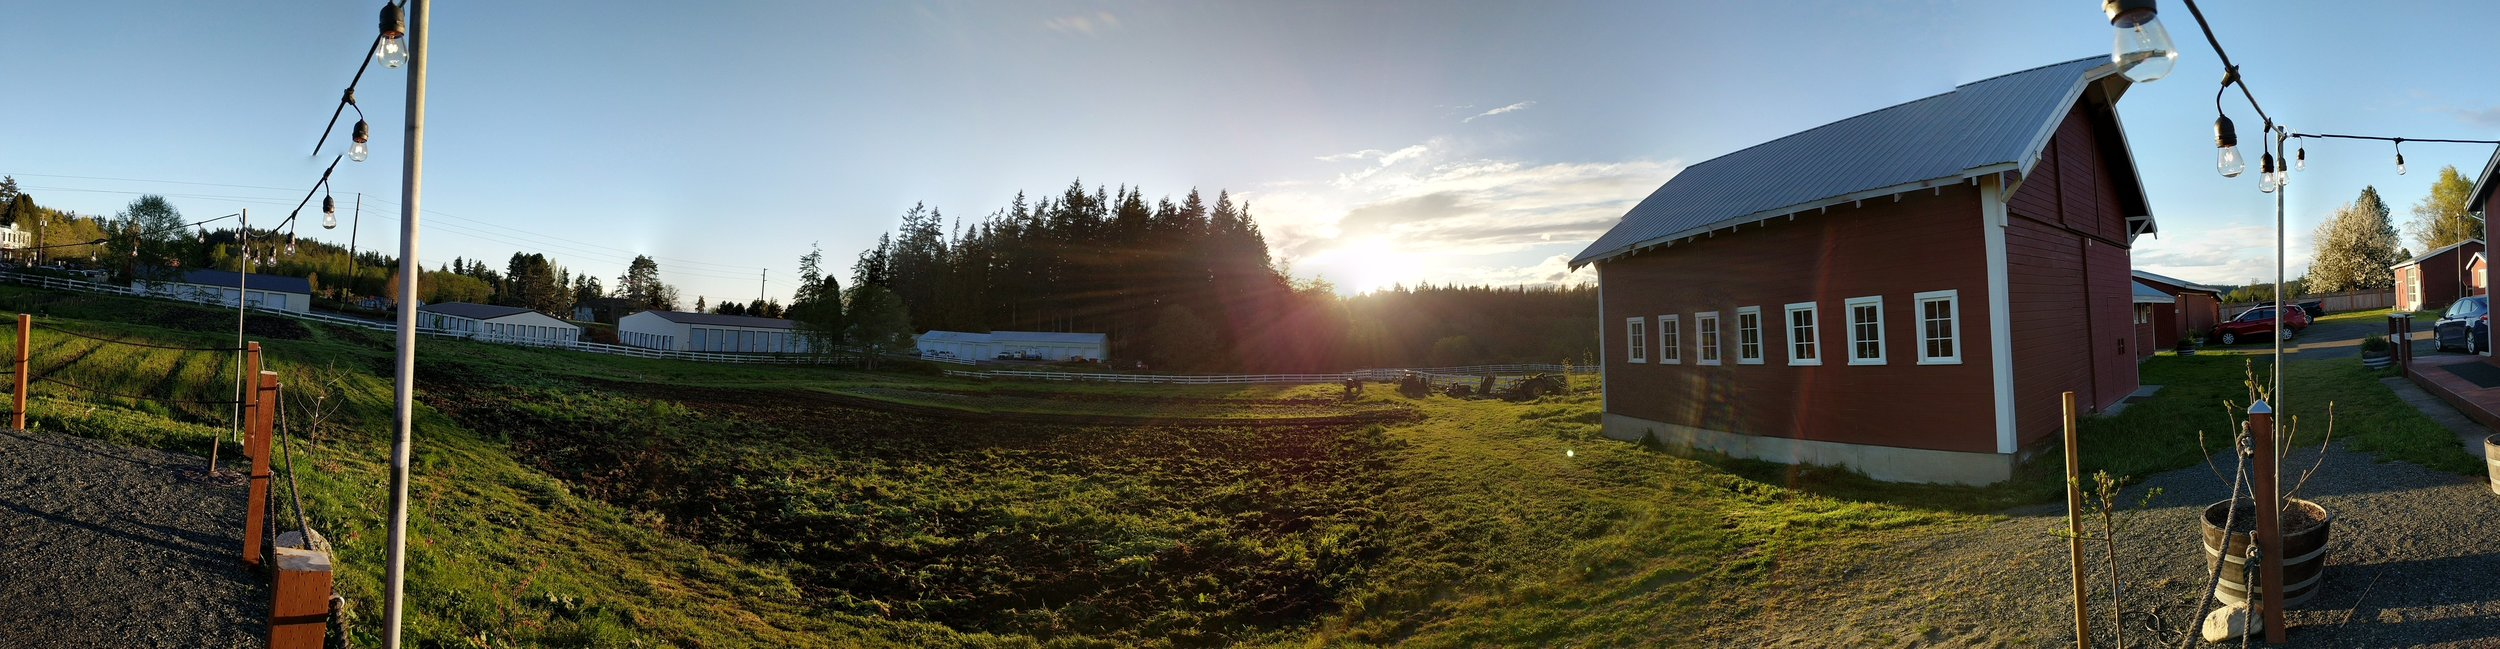 Panorama of Orchard Kitchen Organic Farm and Restaurant Owners Chef Vincent Nattress Wine Maven Tyla Nattress Whidbey Island.jpg